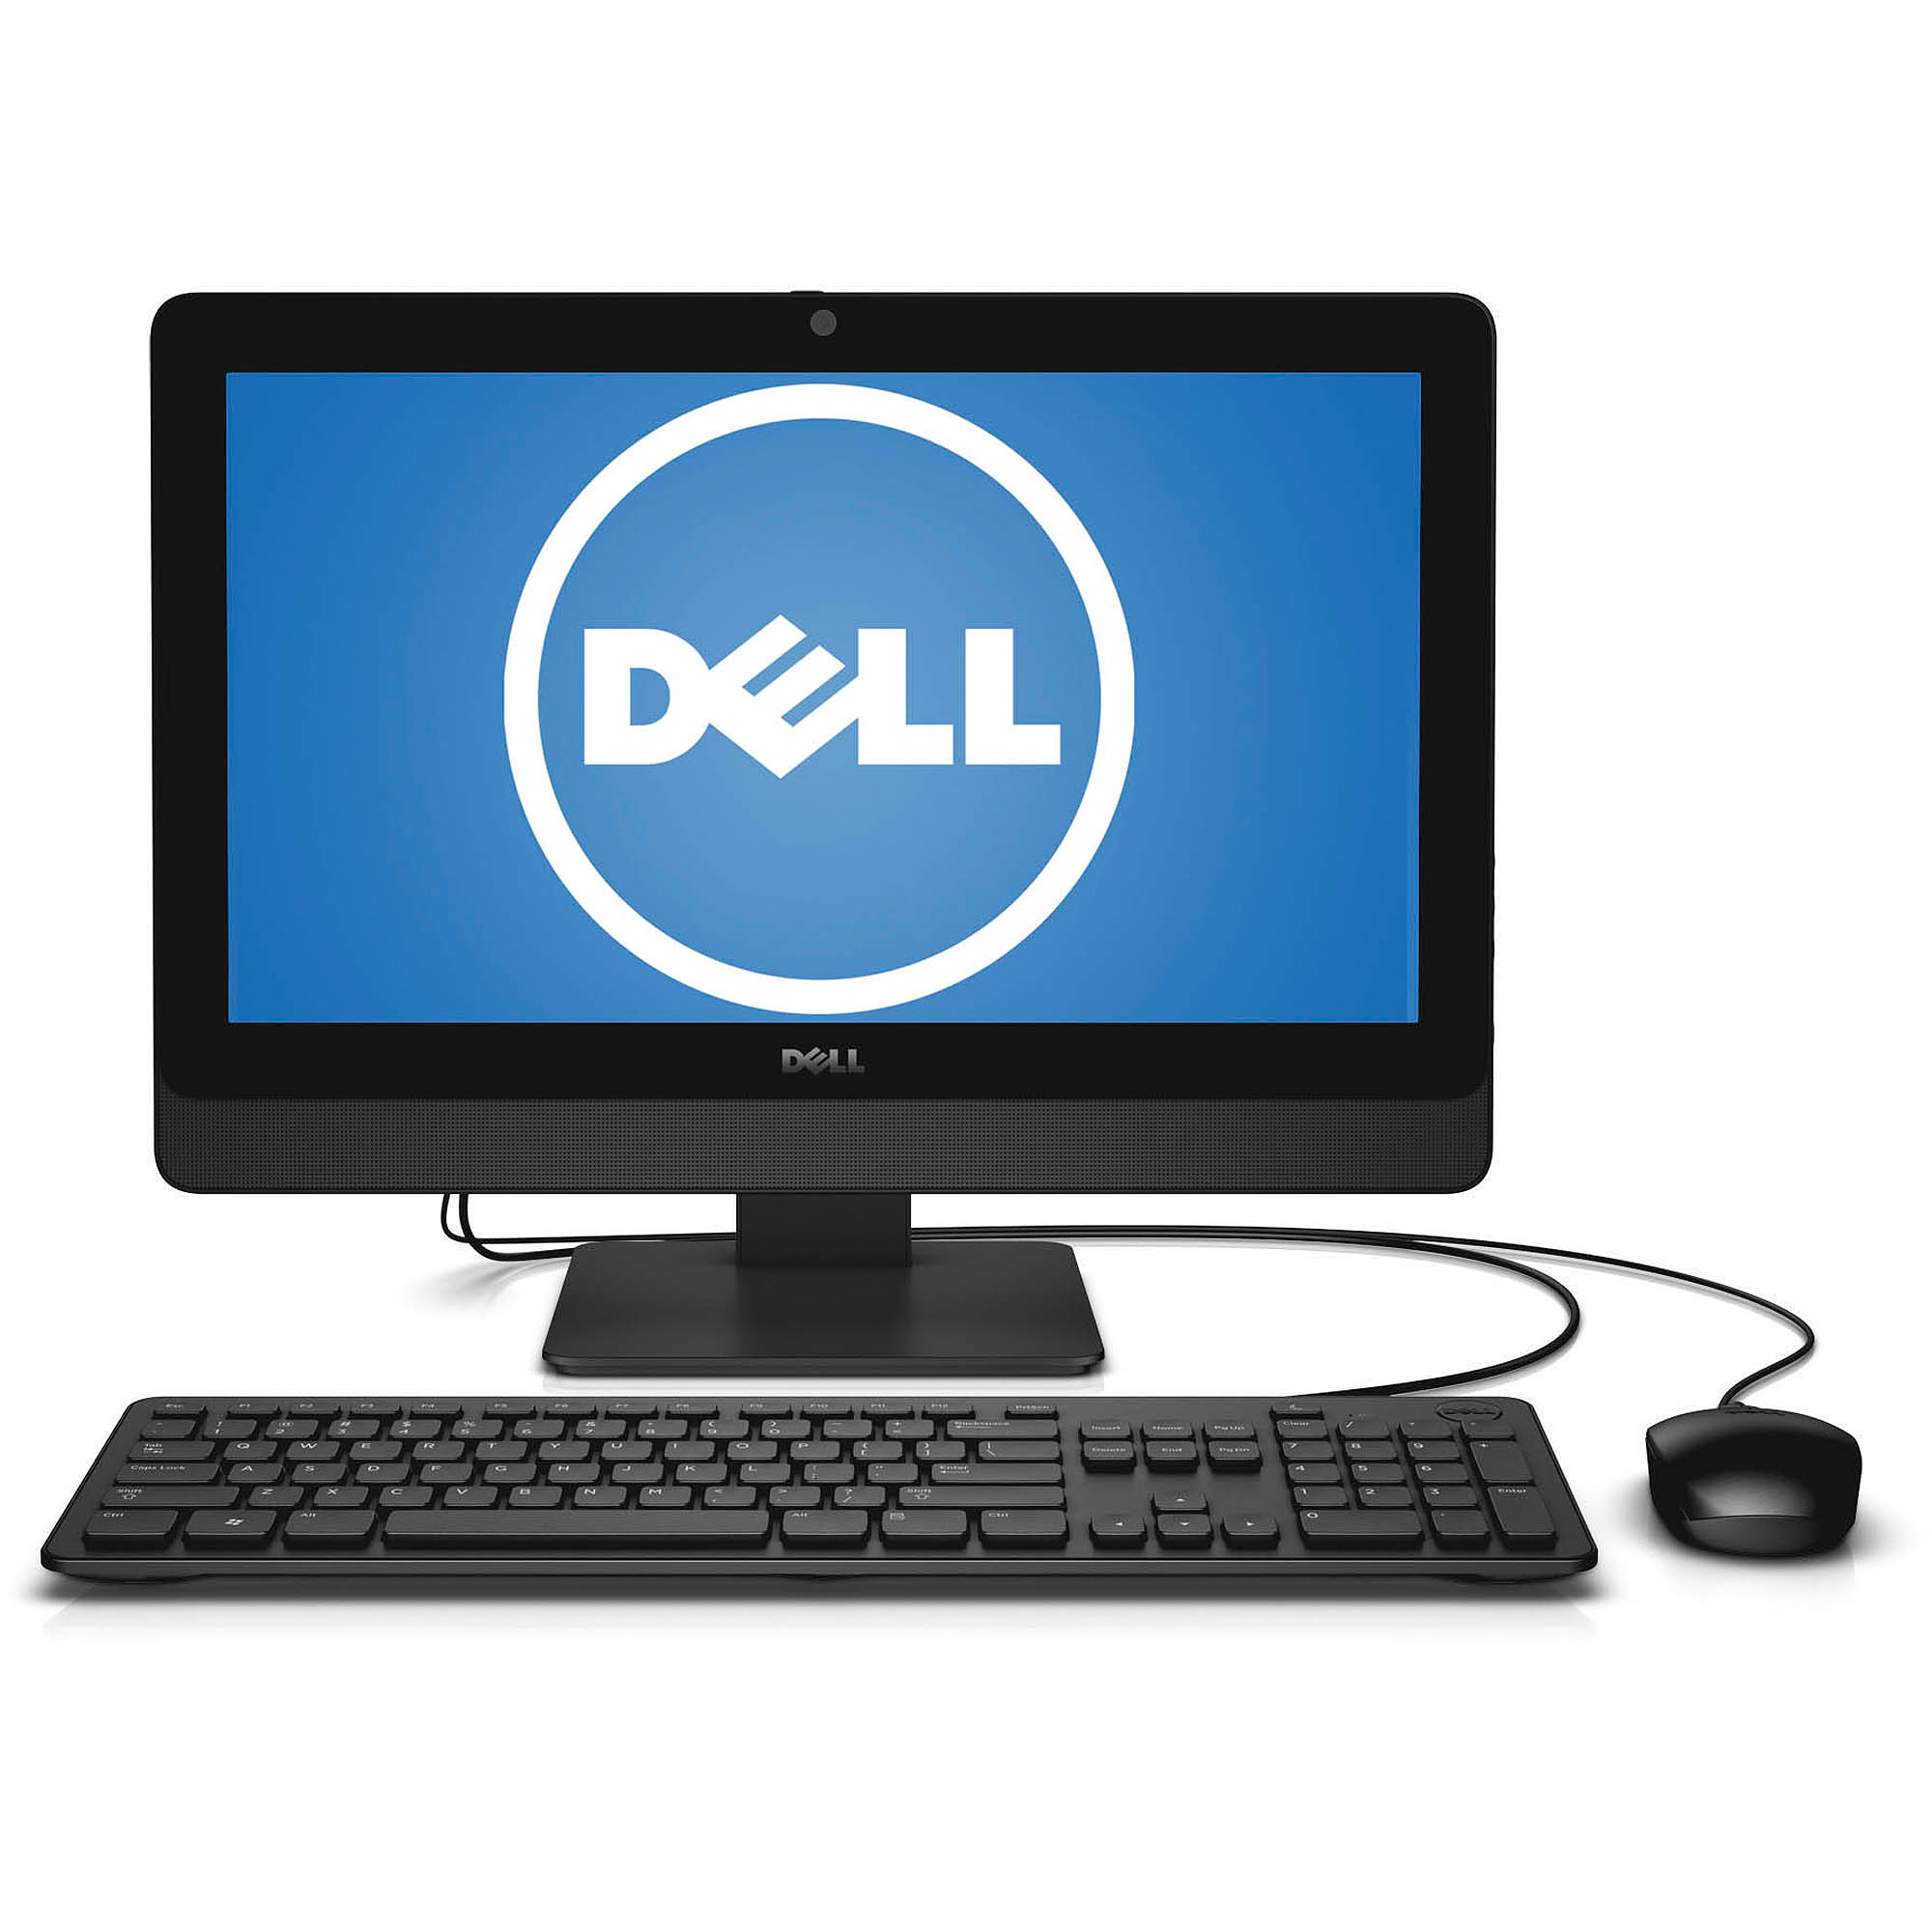 Dell Inspiron 3048 All-in-One Desktop PC with Intel Pentium G3220T Processor, 4GB Memory, 20' Touchscreen Display, 1TB Hard Drive and Windows 8.1